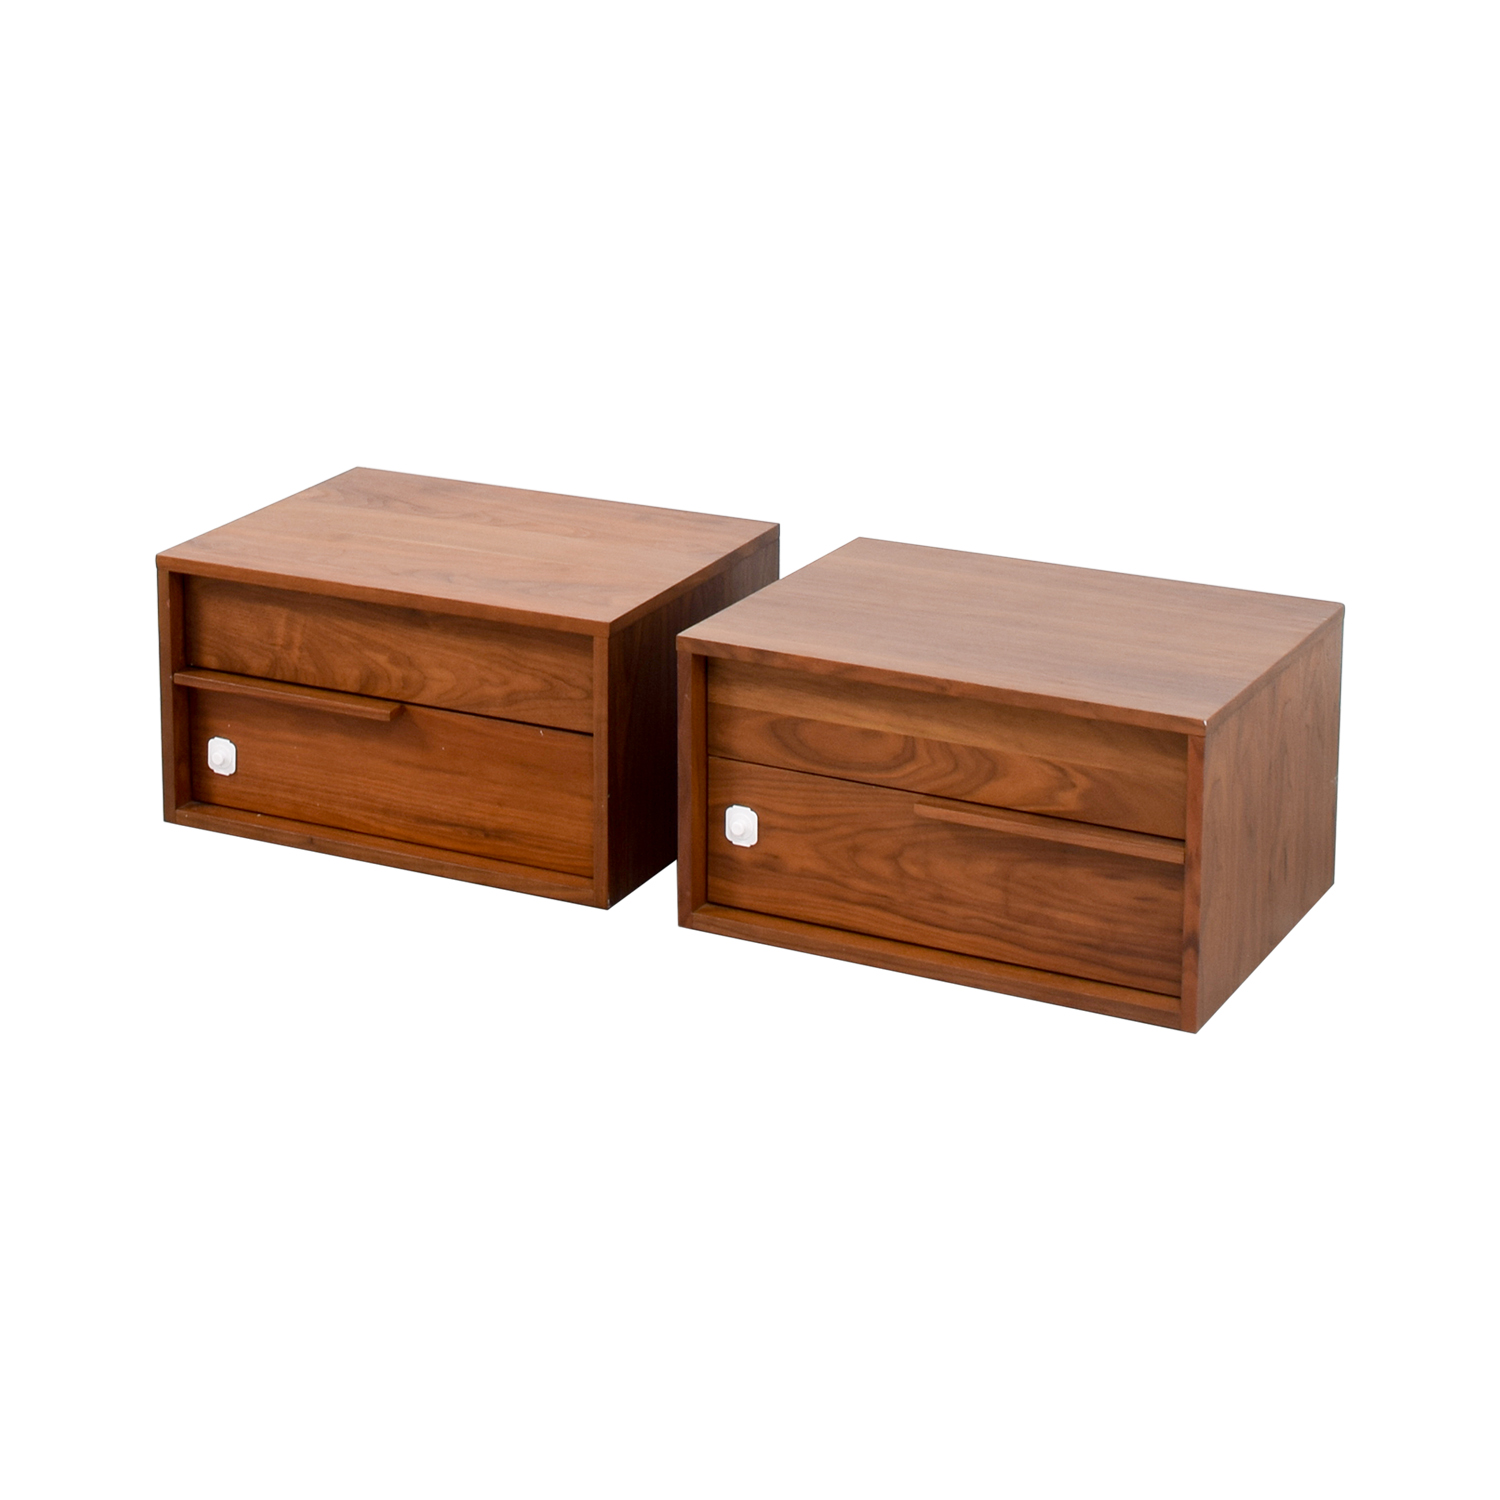 Modloft Modloft Jane Two-Drawer Nightstands price